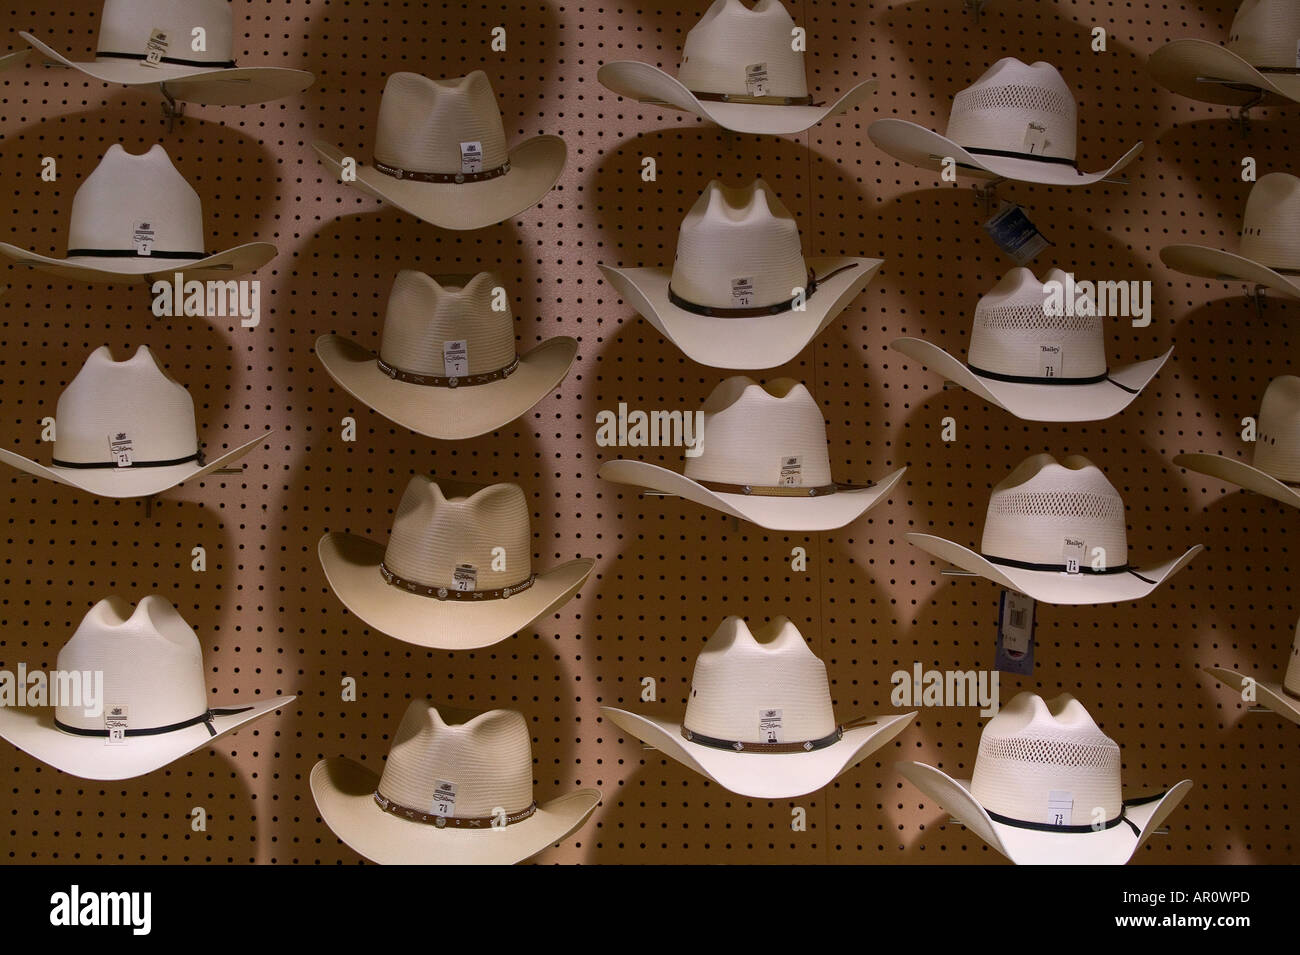 Cowboy Hat Shop Stock Photos   Cowboy Hat Shop Stock Images - Alamy ace1841af04